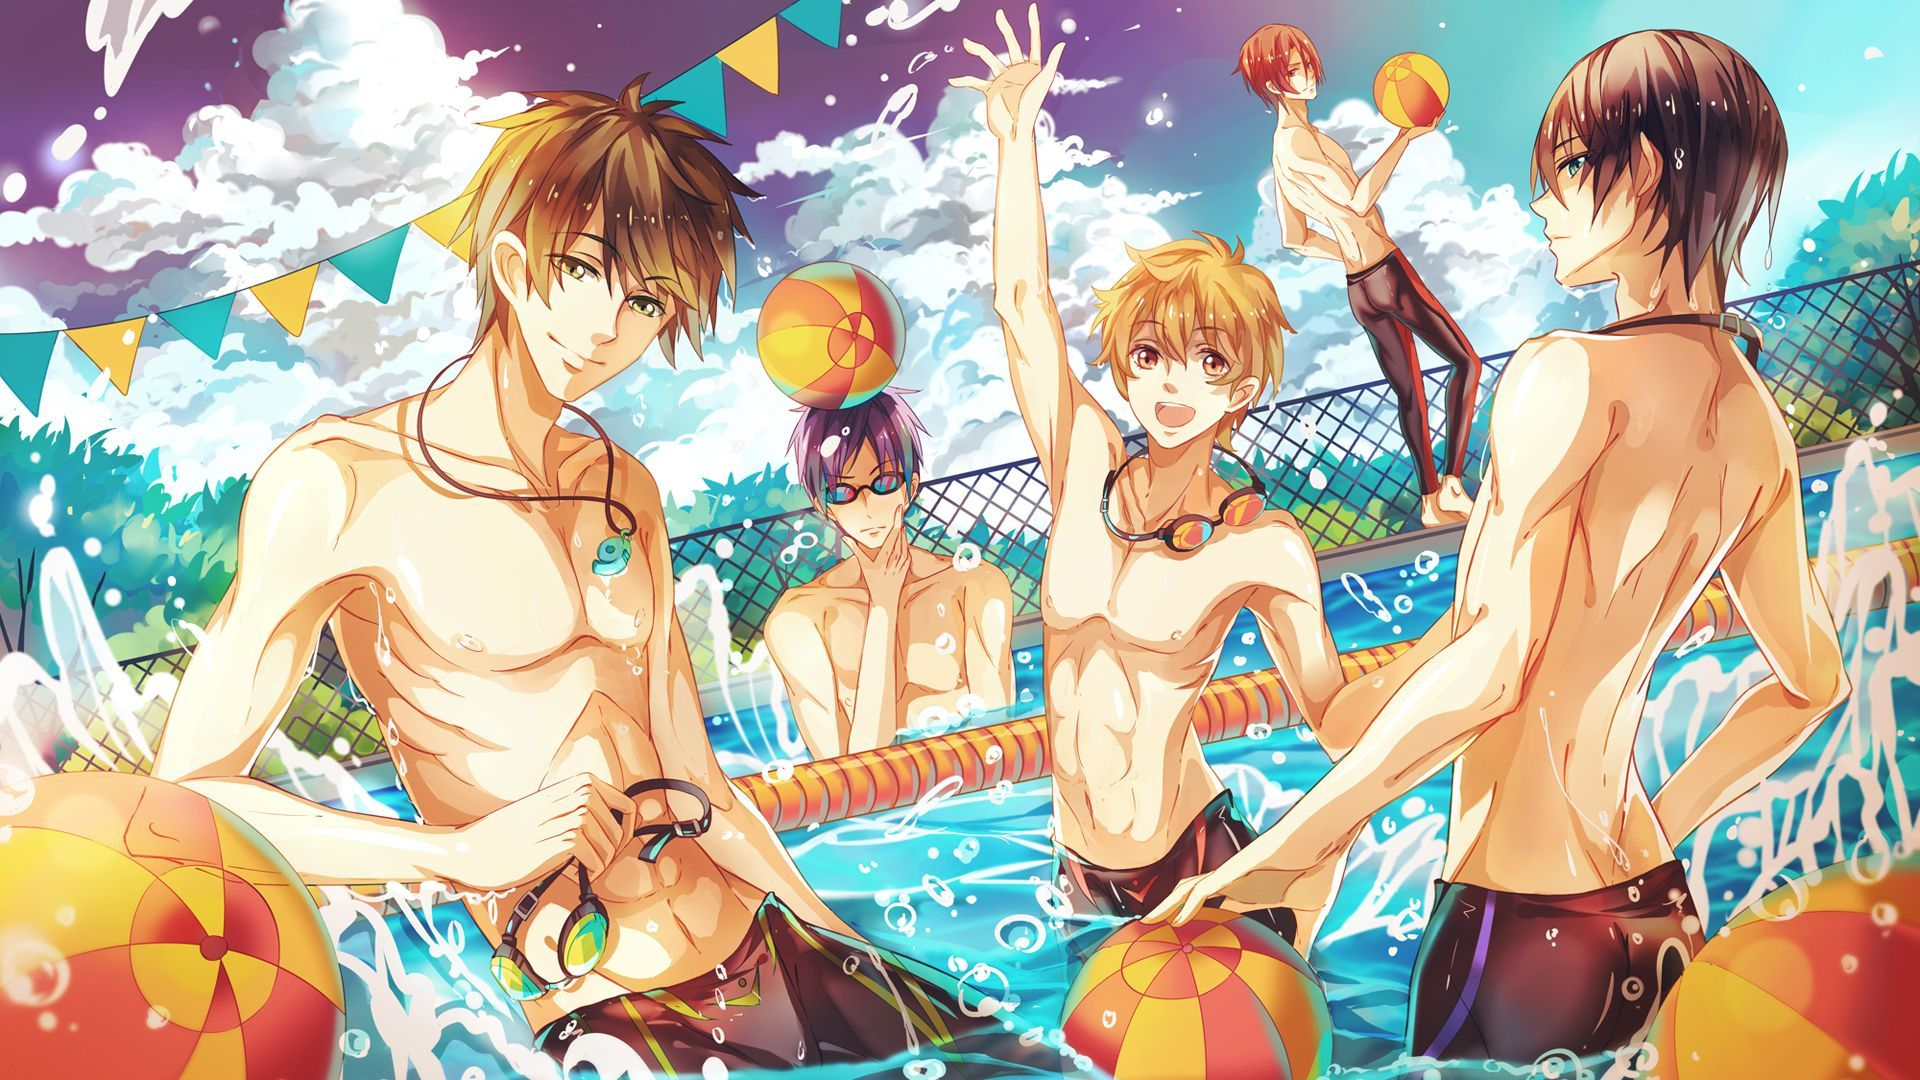 Free Iwatobi Swim Club Anime Wallpapers Wallpaper Cave Zerochan has 888 matsuoka rin anime images, wallpapers, hd wallpapers, android/iphone wallpapers, fanart, cosplay pictures, facebook covers, and many more in its gallery. iwatobi swim club anime wallpapers